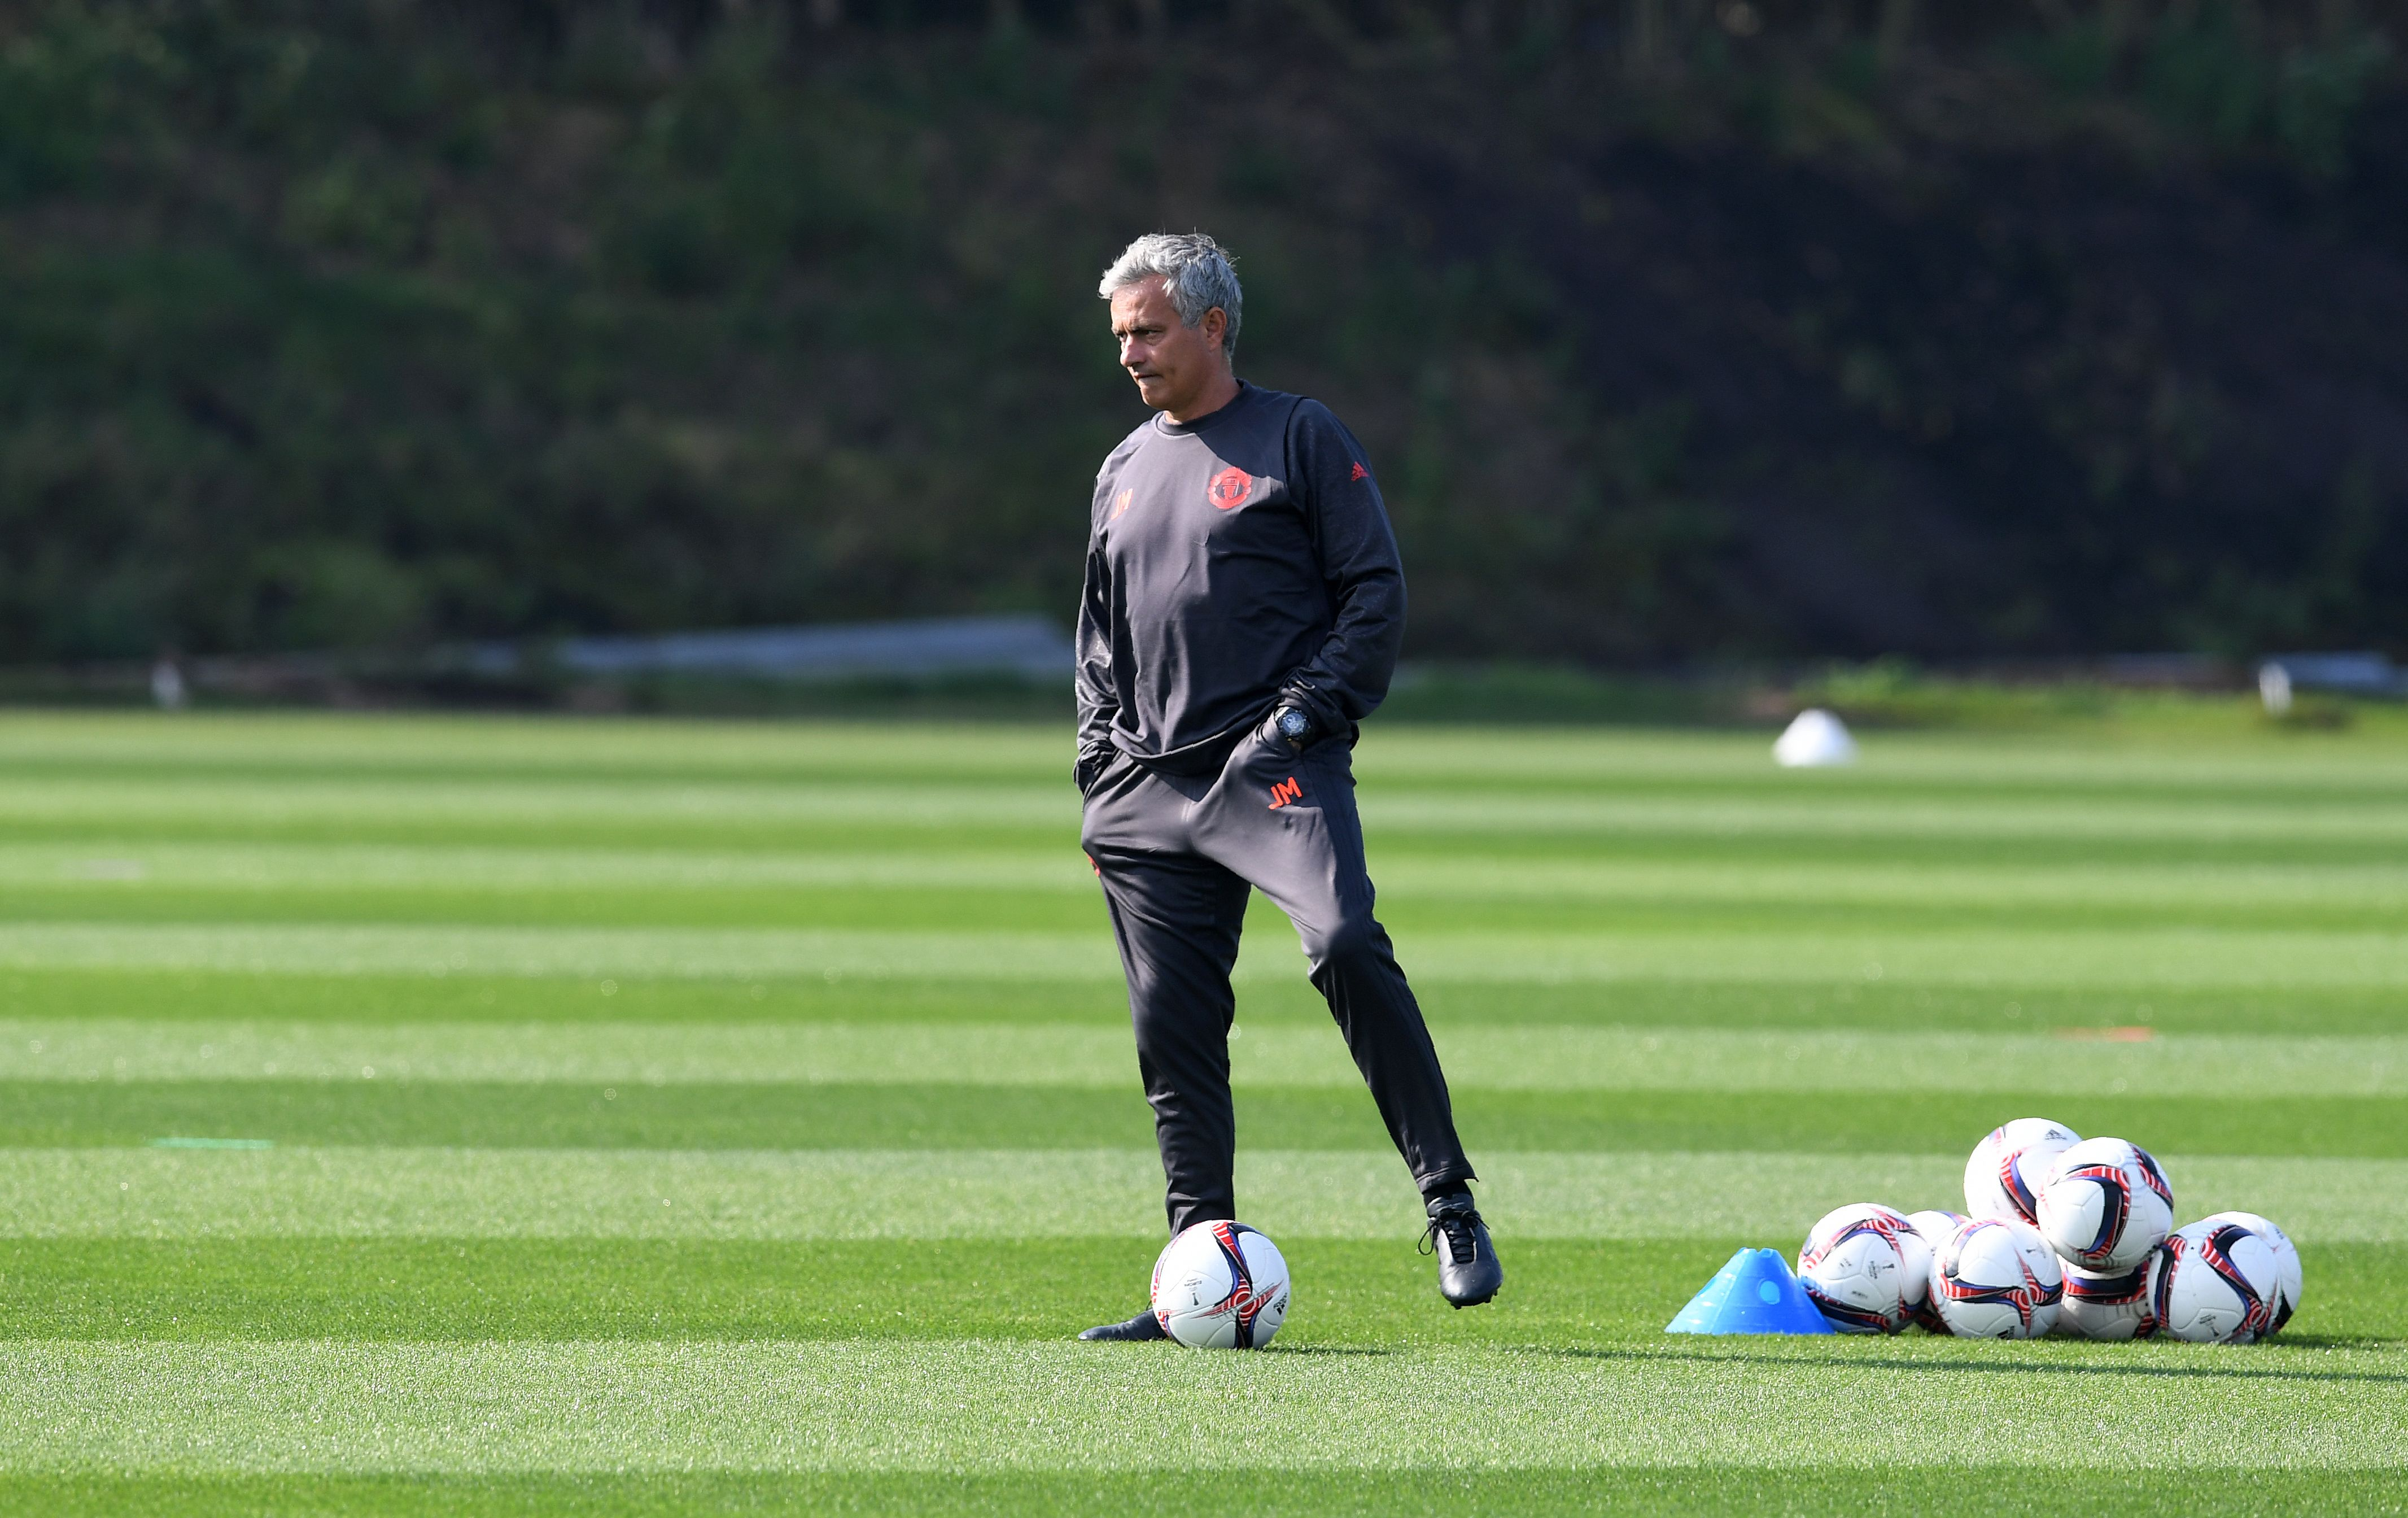 Manchester United's Portuguese manager Jose Mourinho takes a team training session at their Carrington Training Centre in Manchester, north west England on September 14, 2016. Manchester United are set to play Feyenoord Rotterdam in a UEFA Europa League group A match on September 15. / AFP / PAUL ELLIS (Photo credit should read PAUL ELLIS/AFP/Getty Images)